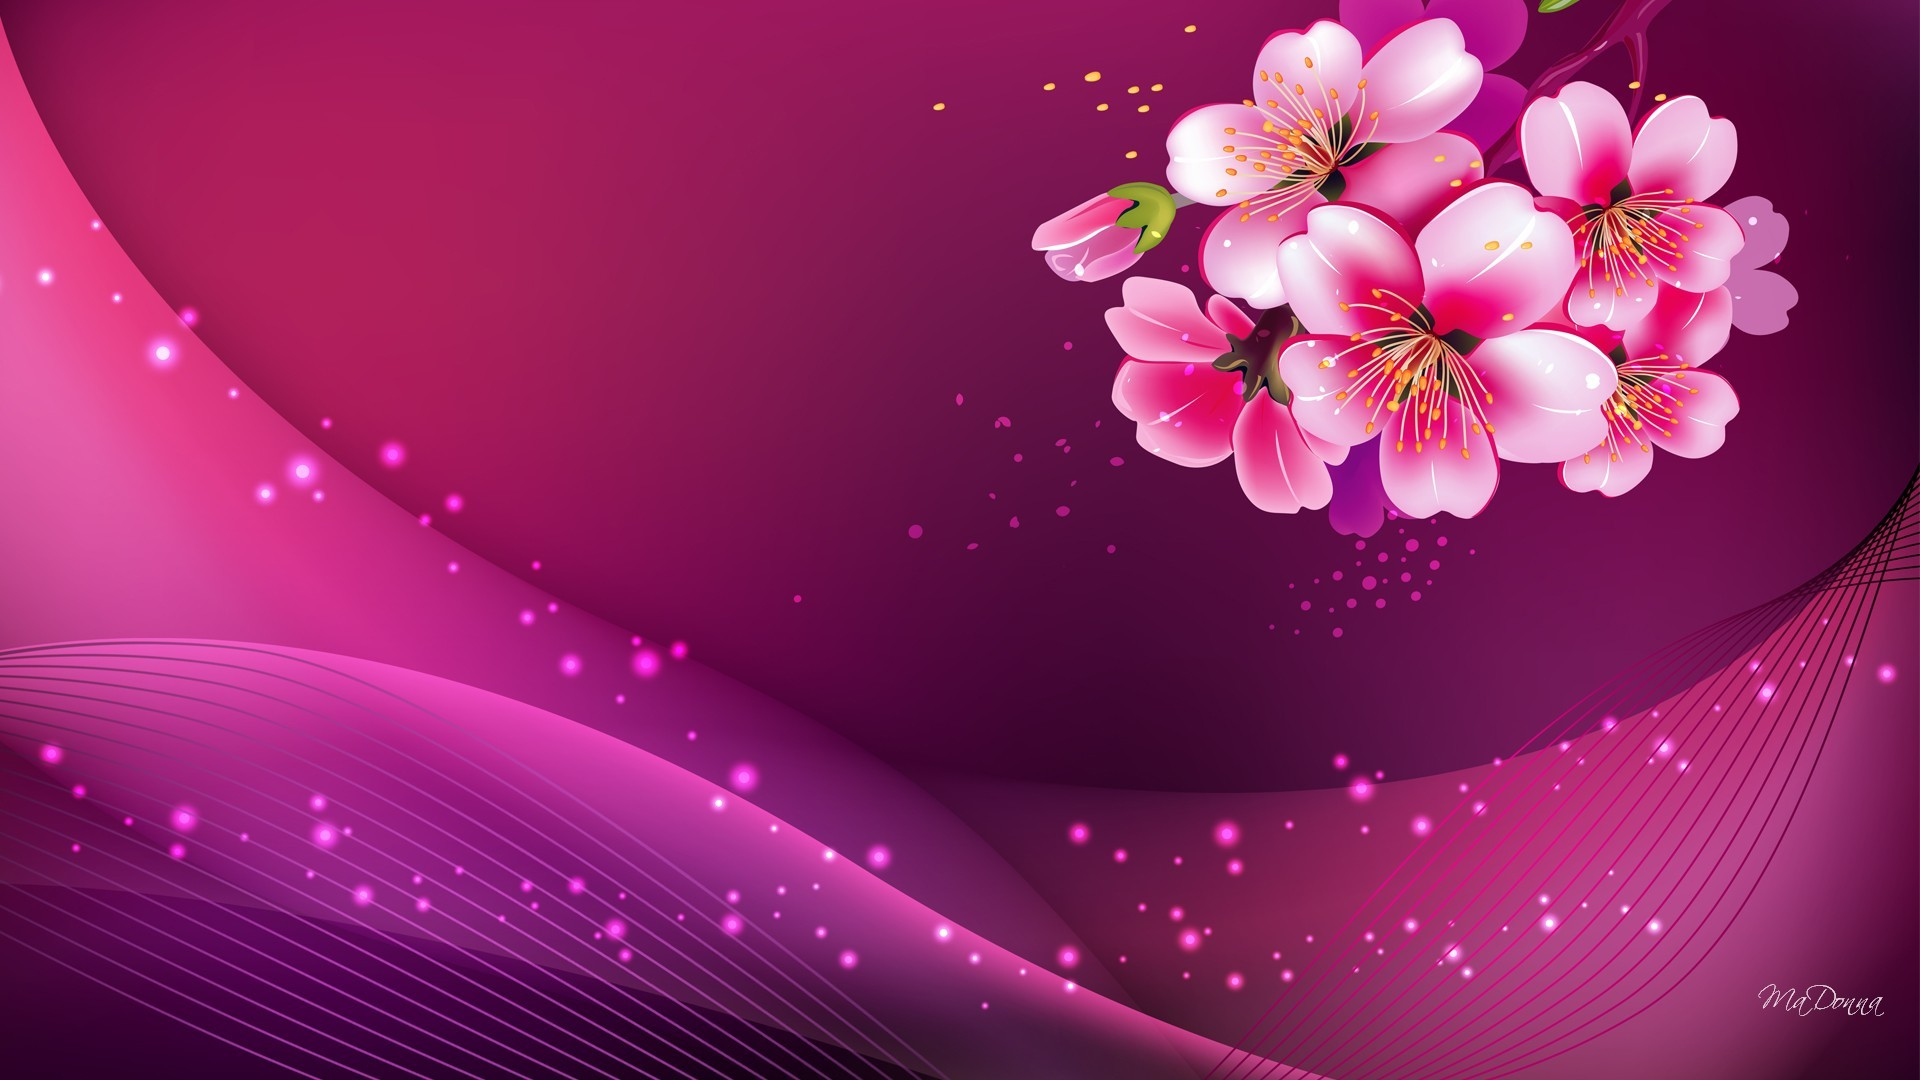 1920x1080 widescreen pink background hd image pc